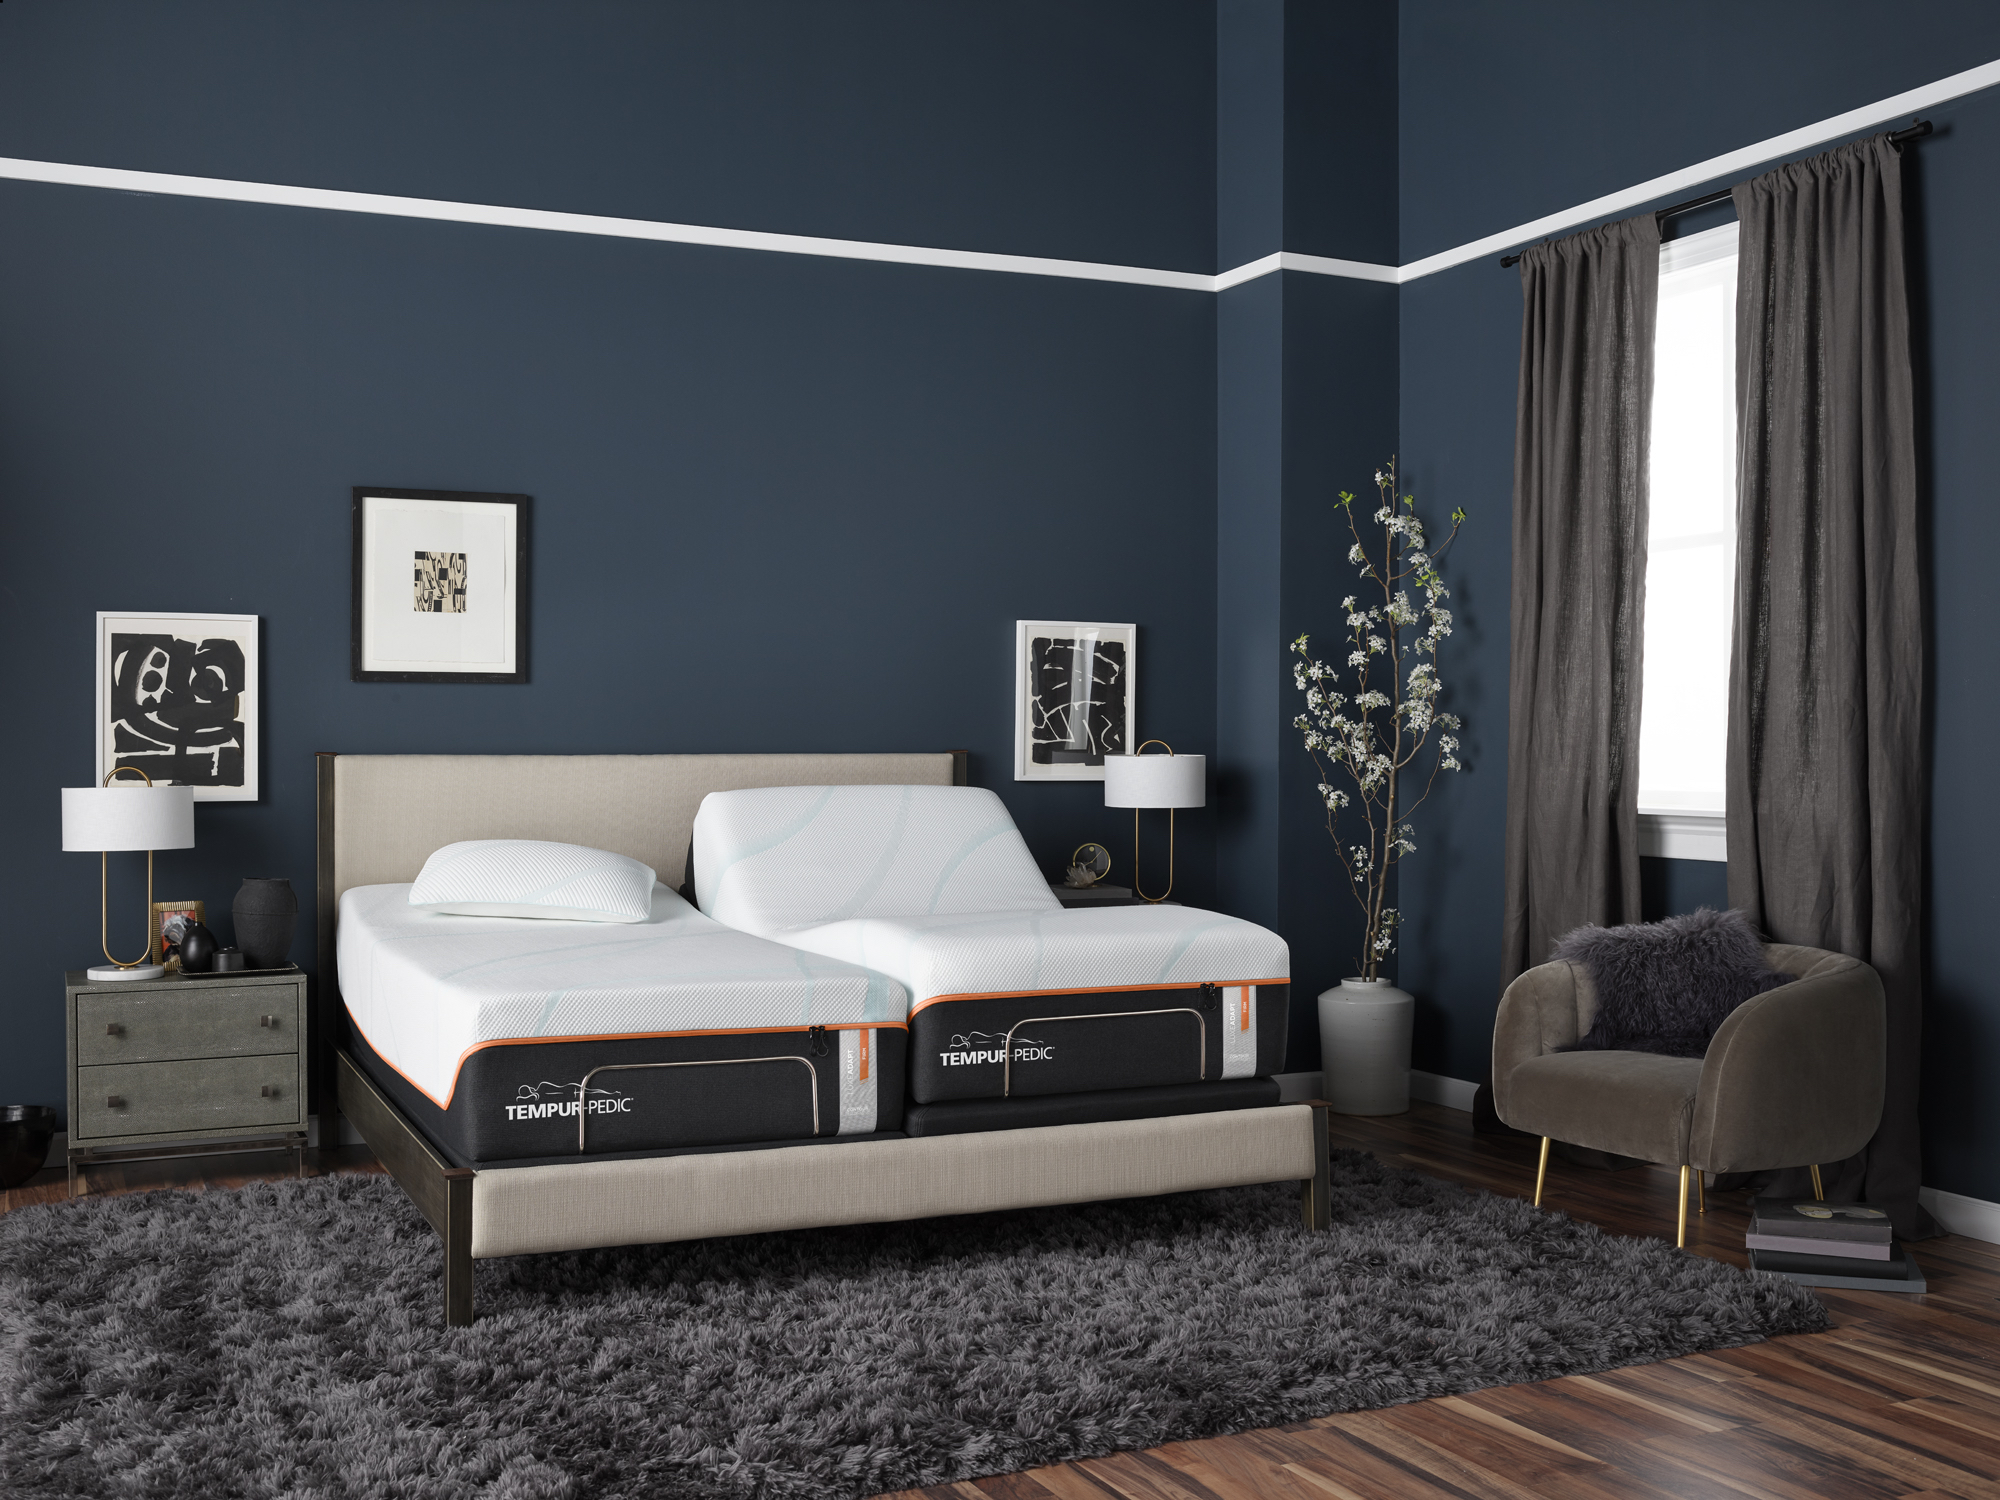 TempurPedic - Years of research have led to the unique feel and benefits of the TEMPUR-PEDIC. Carefully developed TEMPUR material responds to your weight, body heat, and shape to give you a personalized sleep experience that will change your nights and your mornings.Shop our TEMPURPEDIC Collection